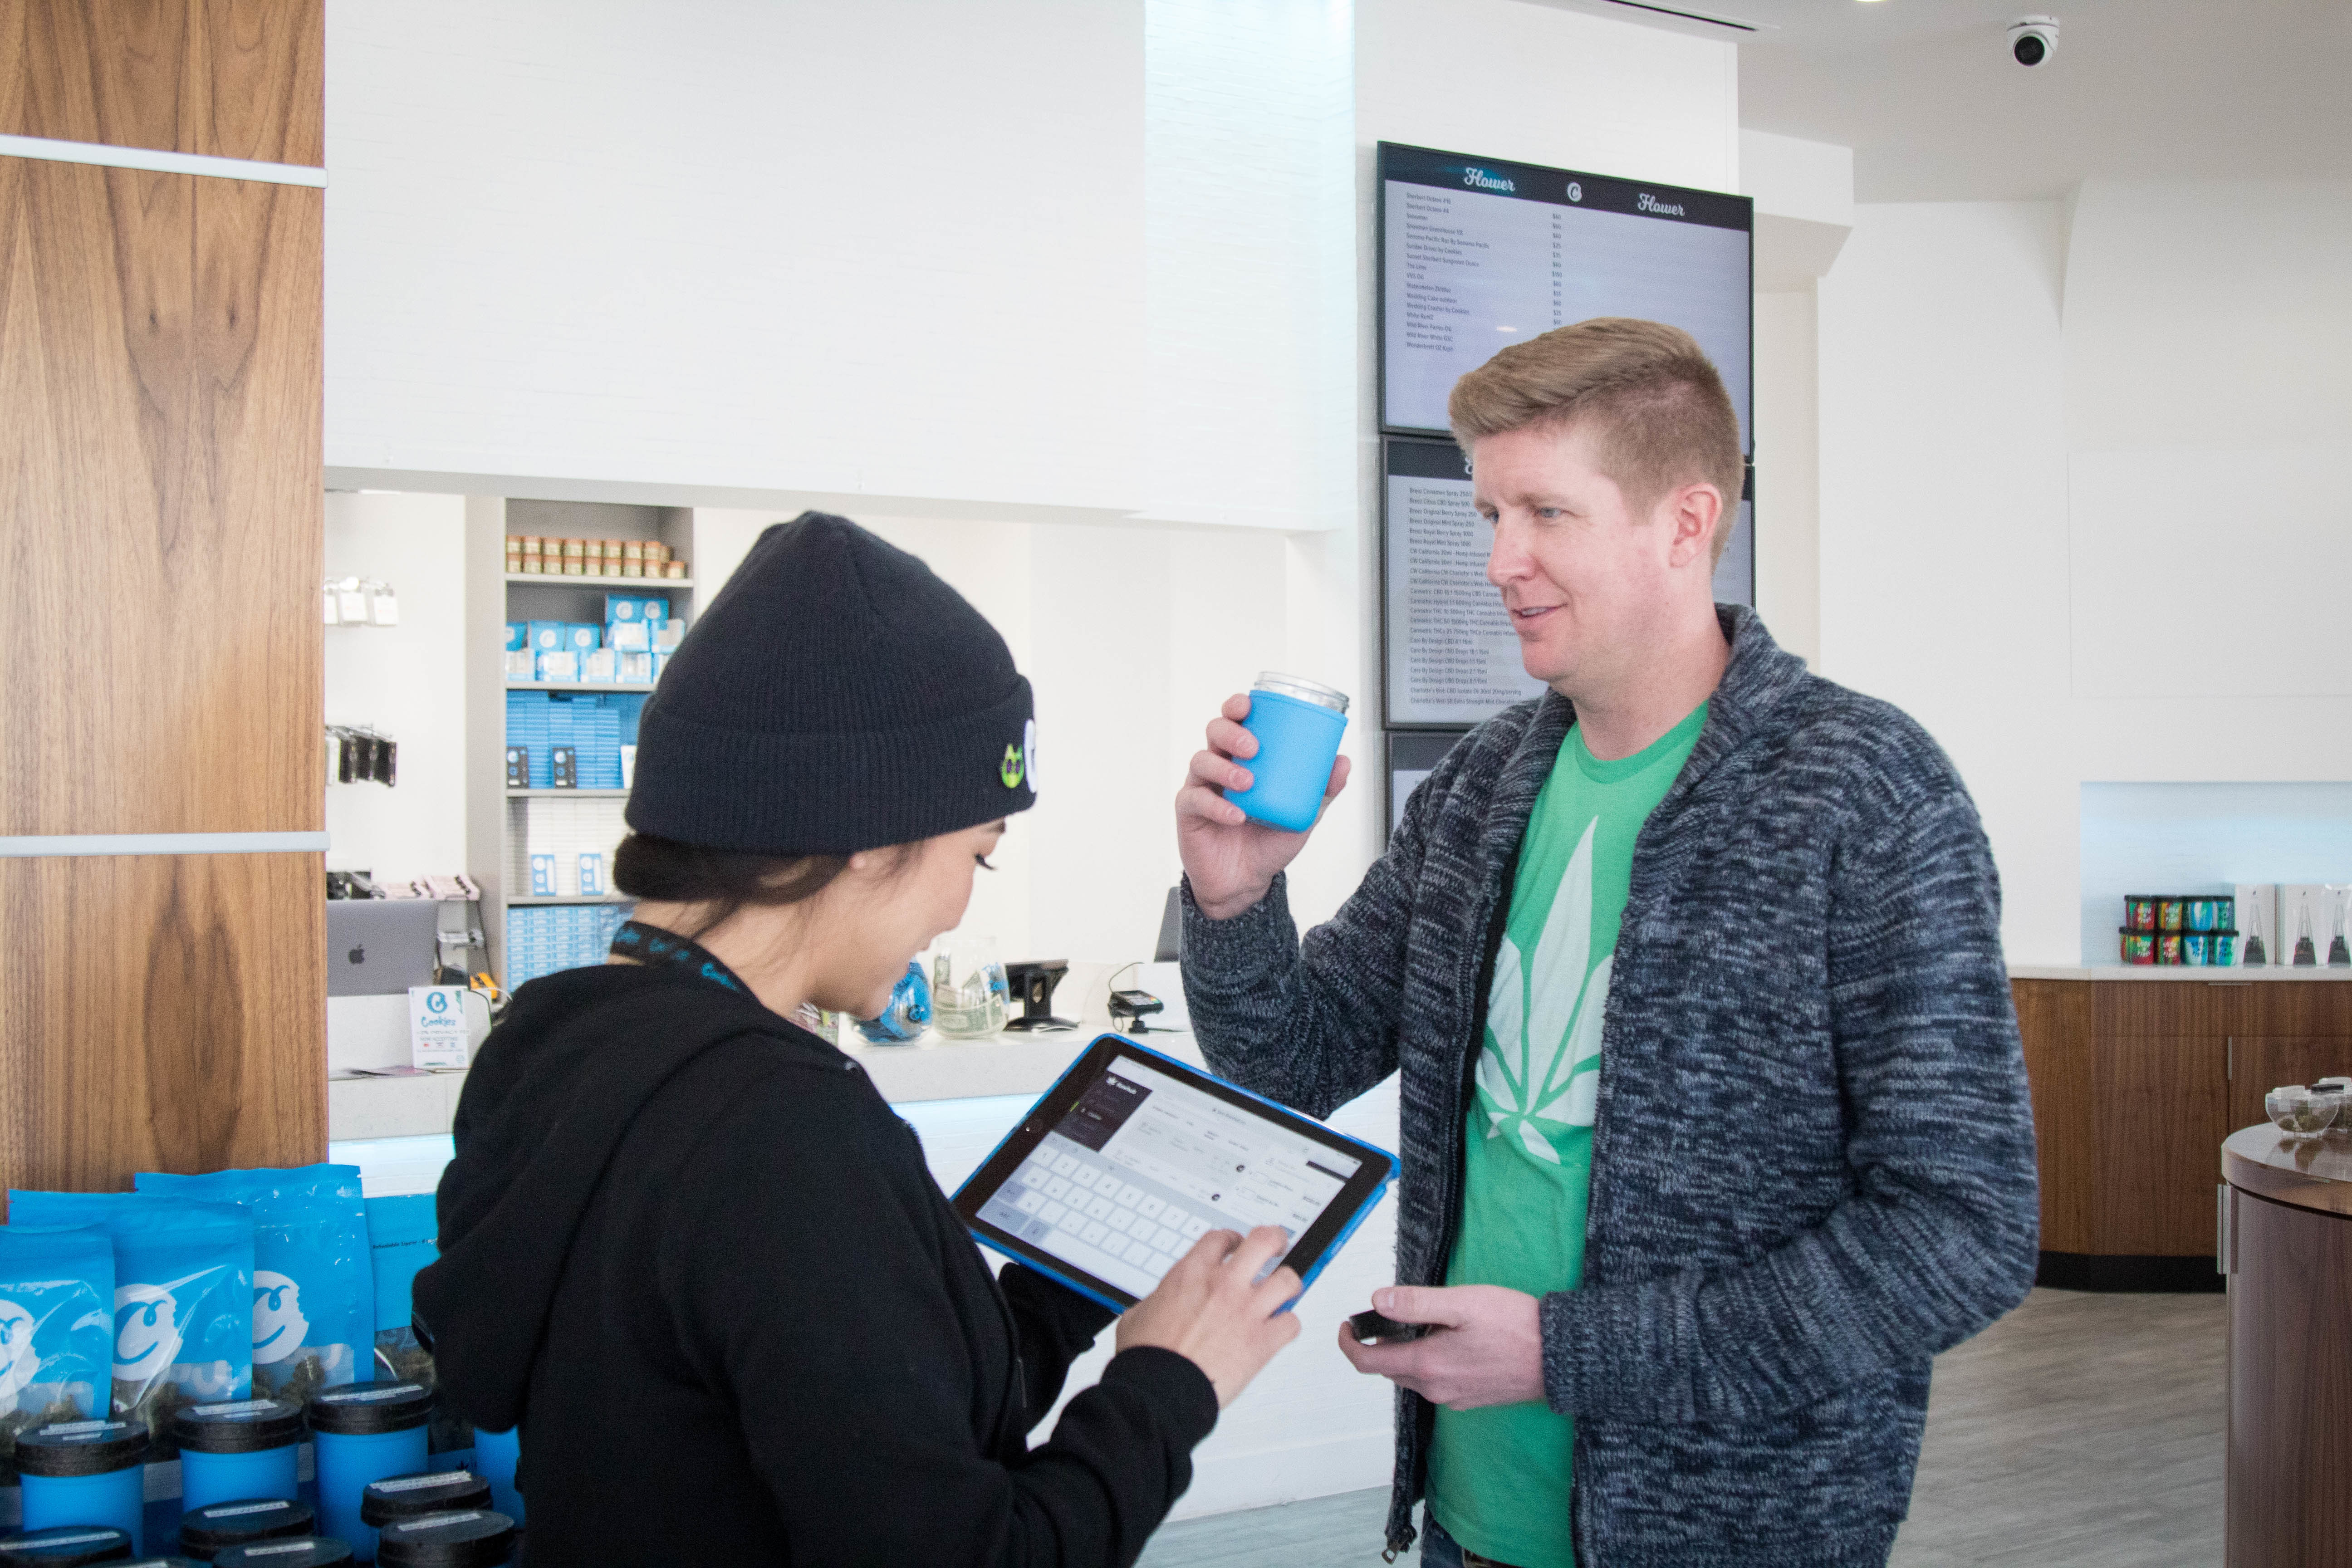 dispensary uses mobile tools to check out cannabis customers